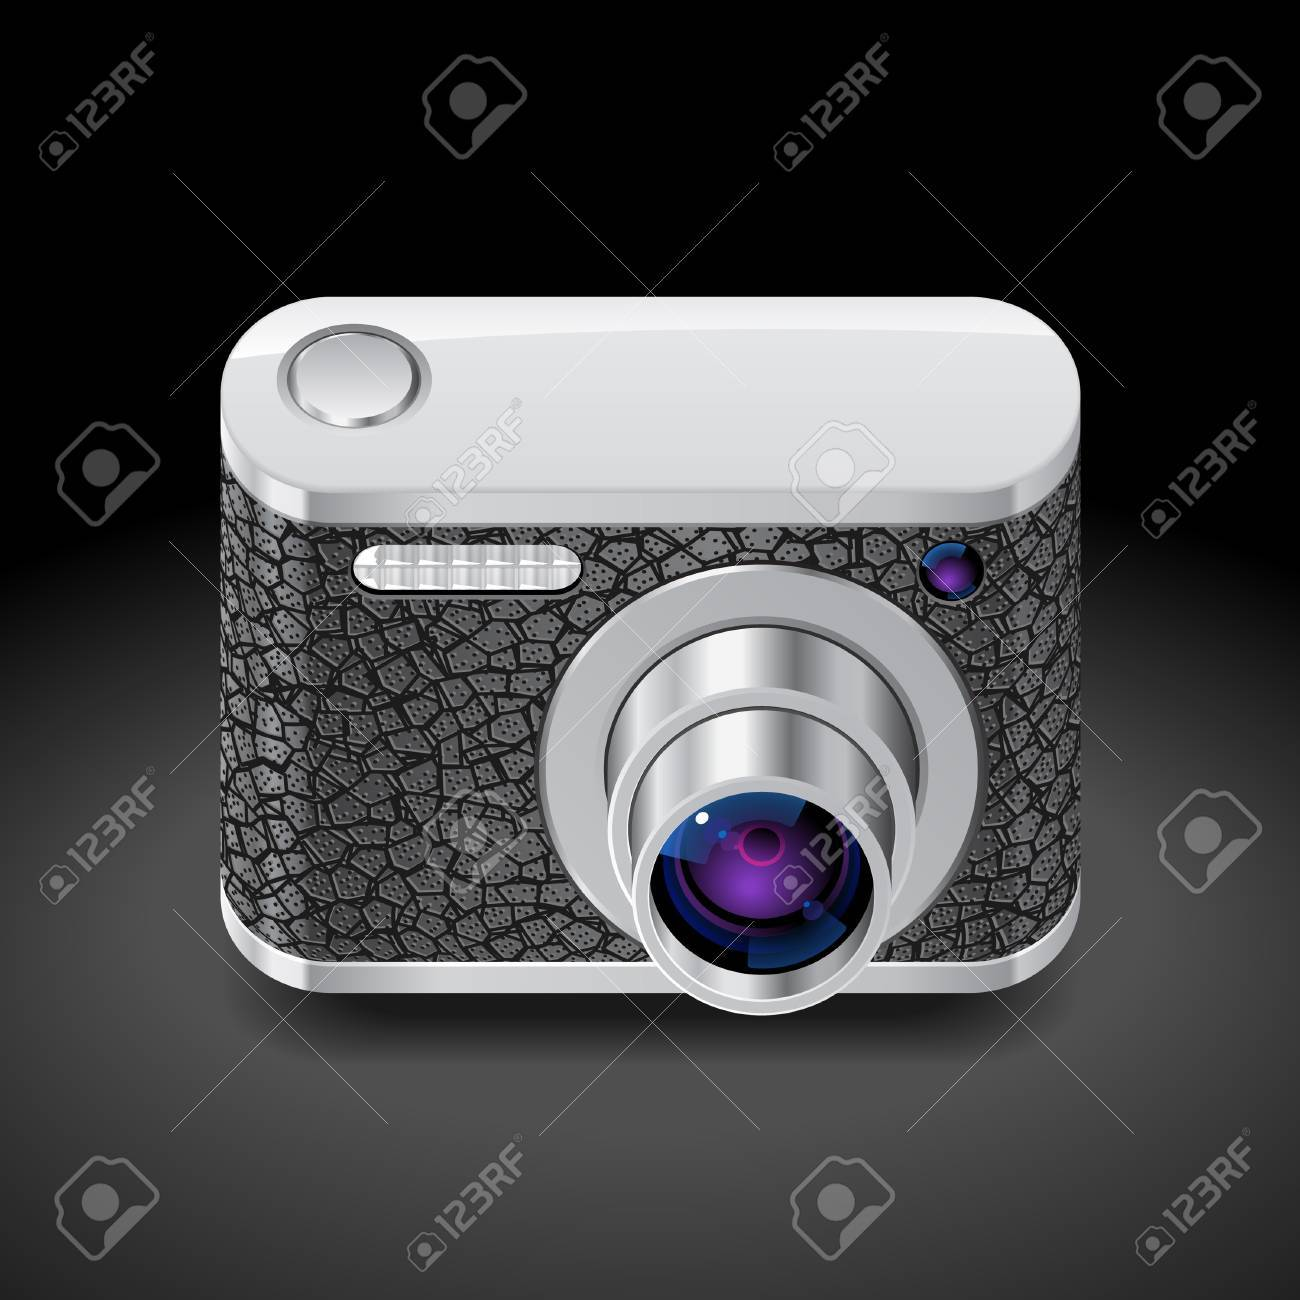 Icon for compact camera decorated with leather. Dark background. Vector saved as eps-10, file contains objects with transparency. Stock Vector - 15858436